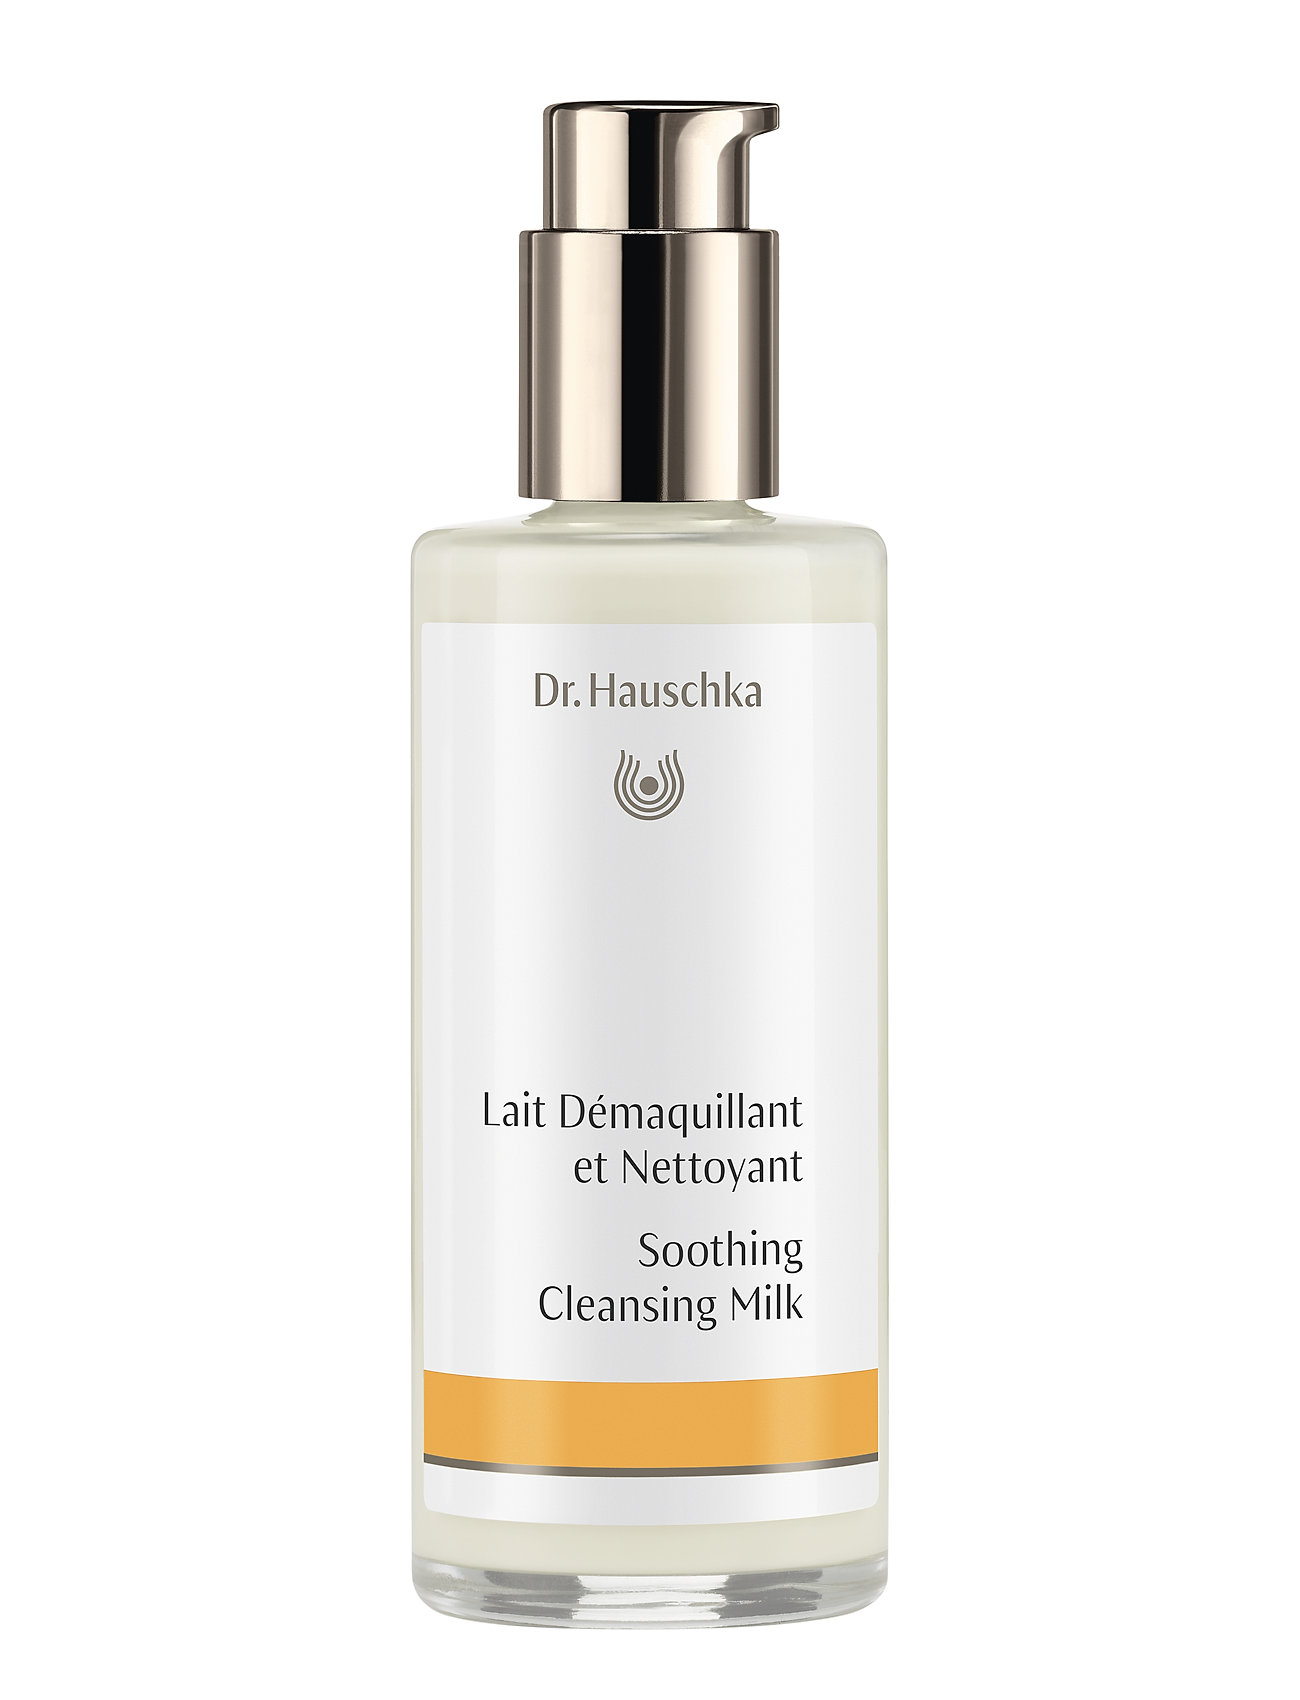 Image of Soothing Cleansing Milk Beauty WOMEN Skin Care Face Cleansers Cleansing Gel Nude Dr. Hauschka (3340172927)